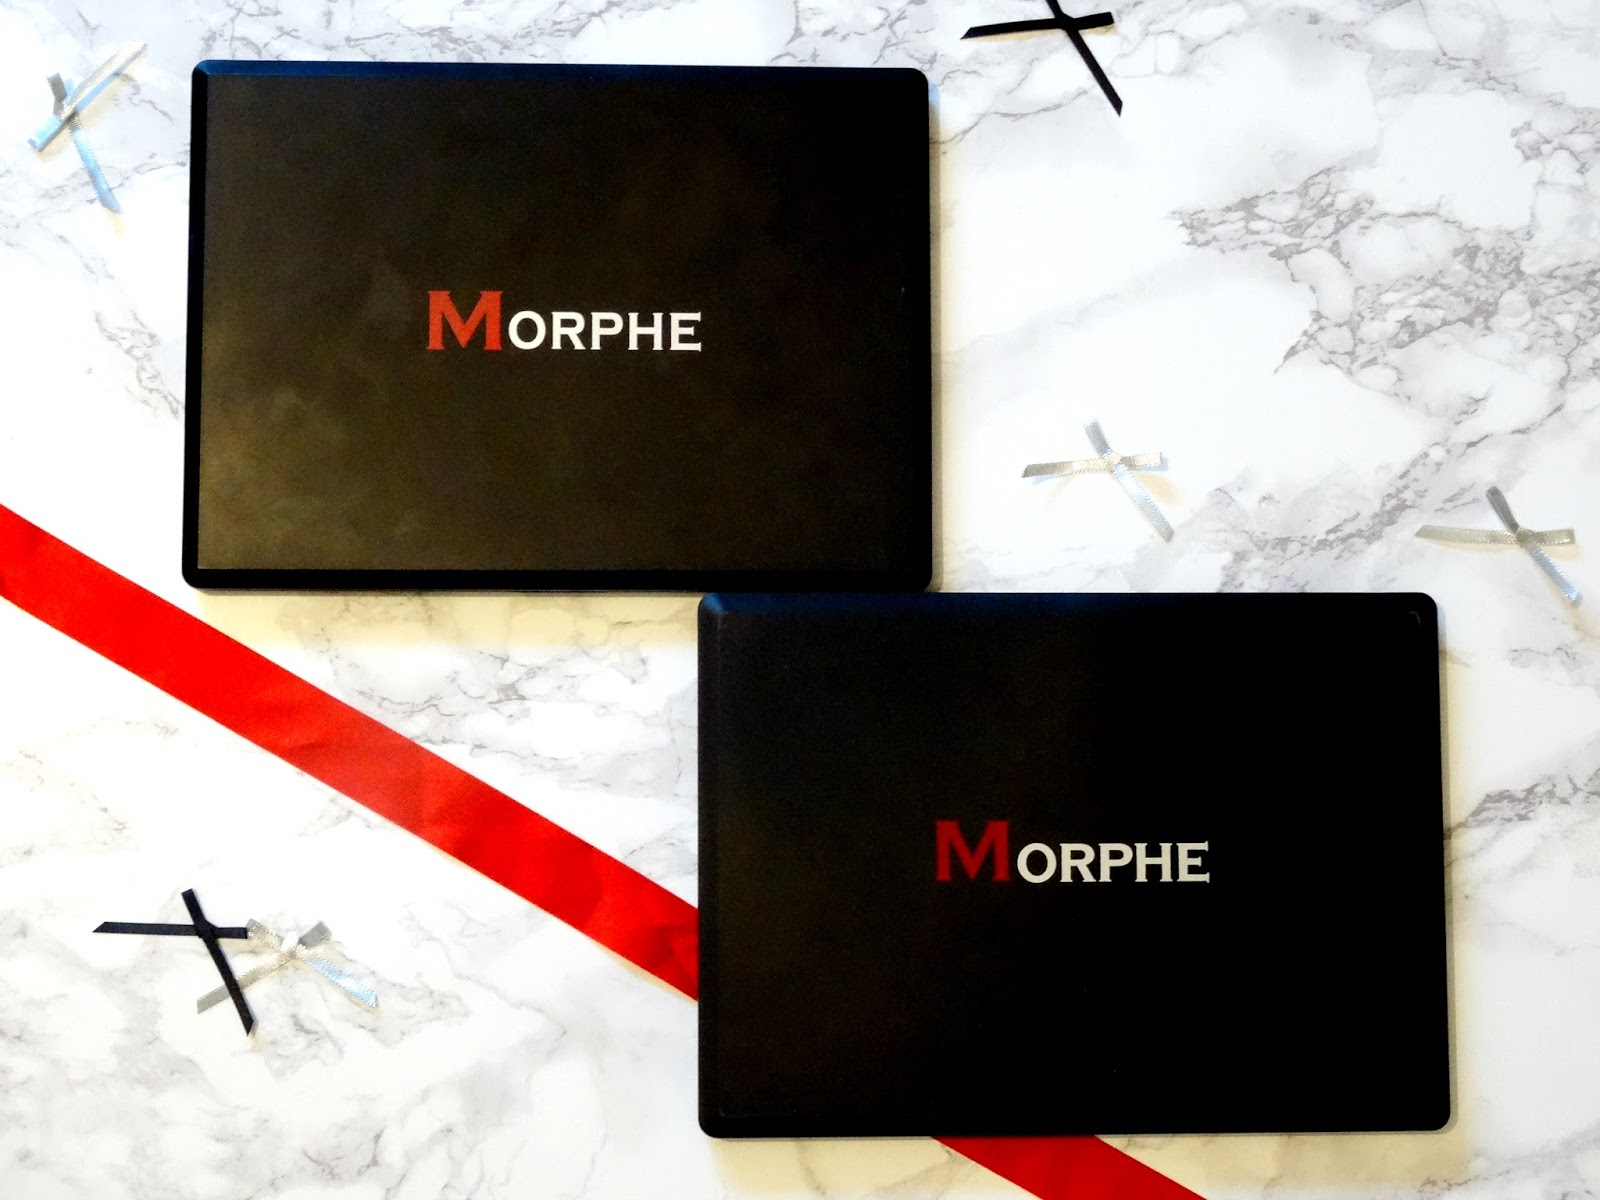 Morphe 35O Palette Vs Fake